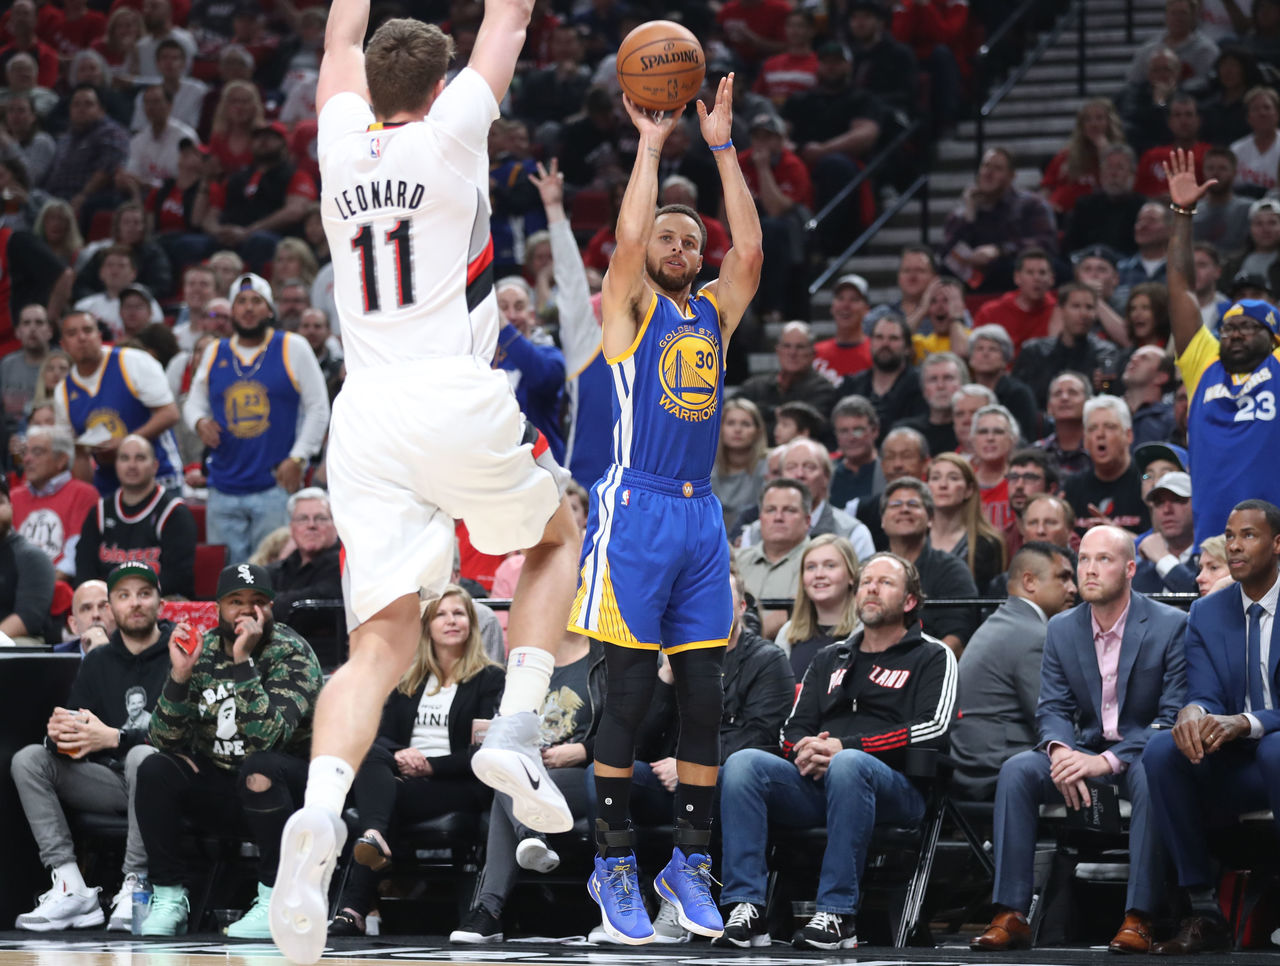 Cropped 2017 04 25t032916z 1287279572 nocid rtrmadp 3 nba playoffs golden state warriors at portland trail blazers